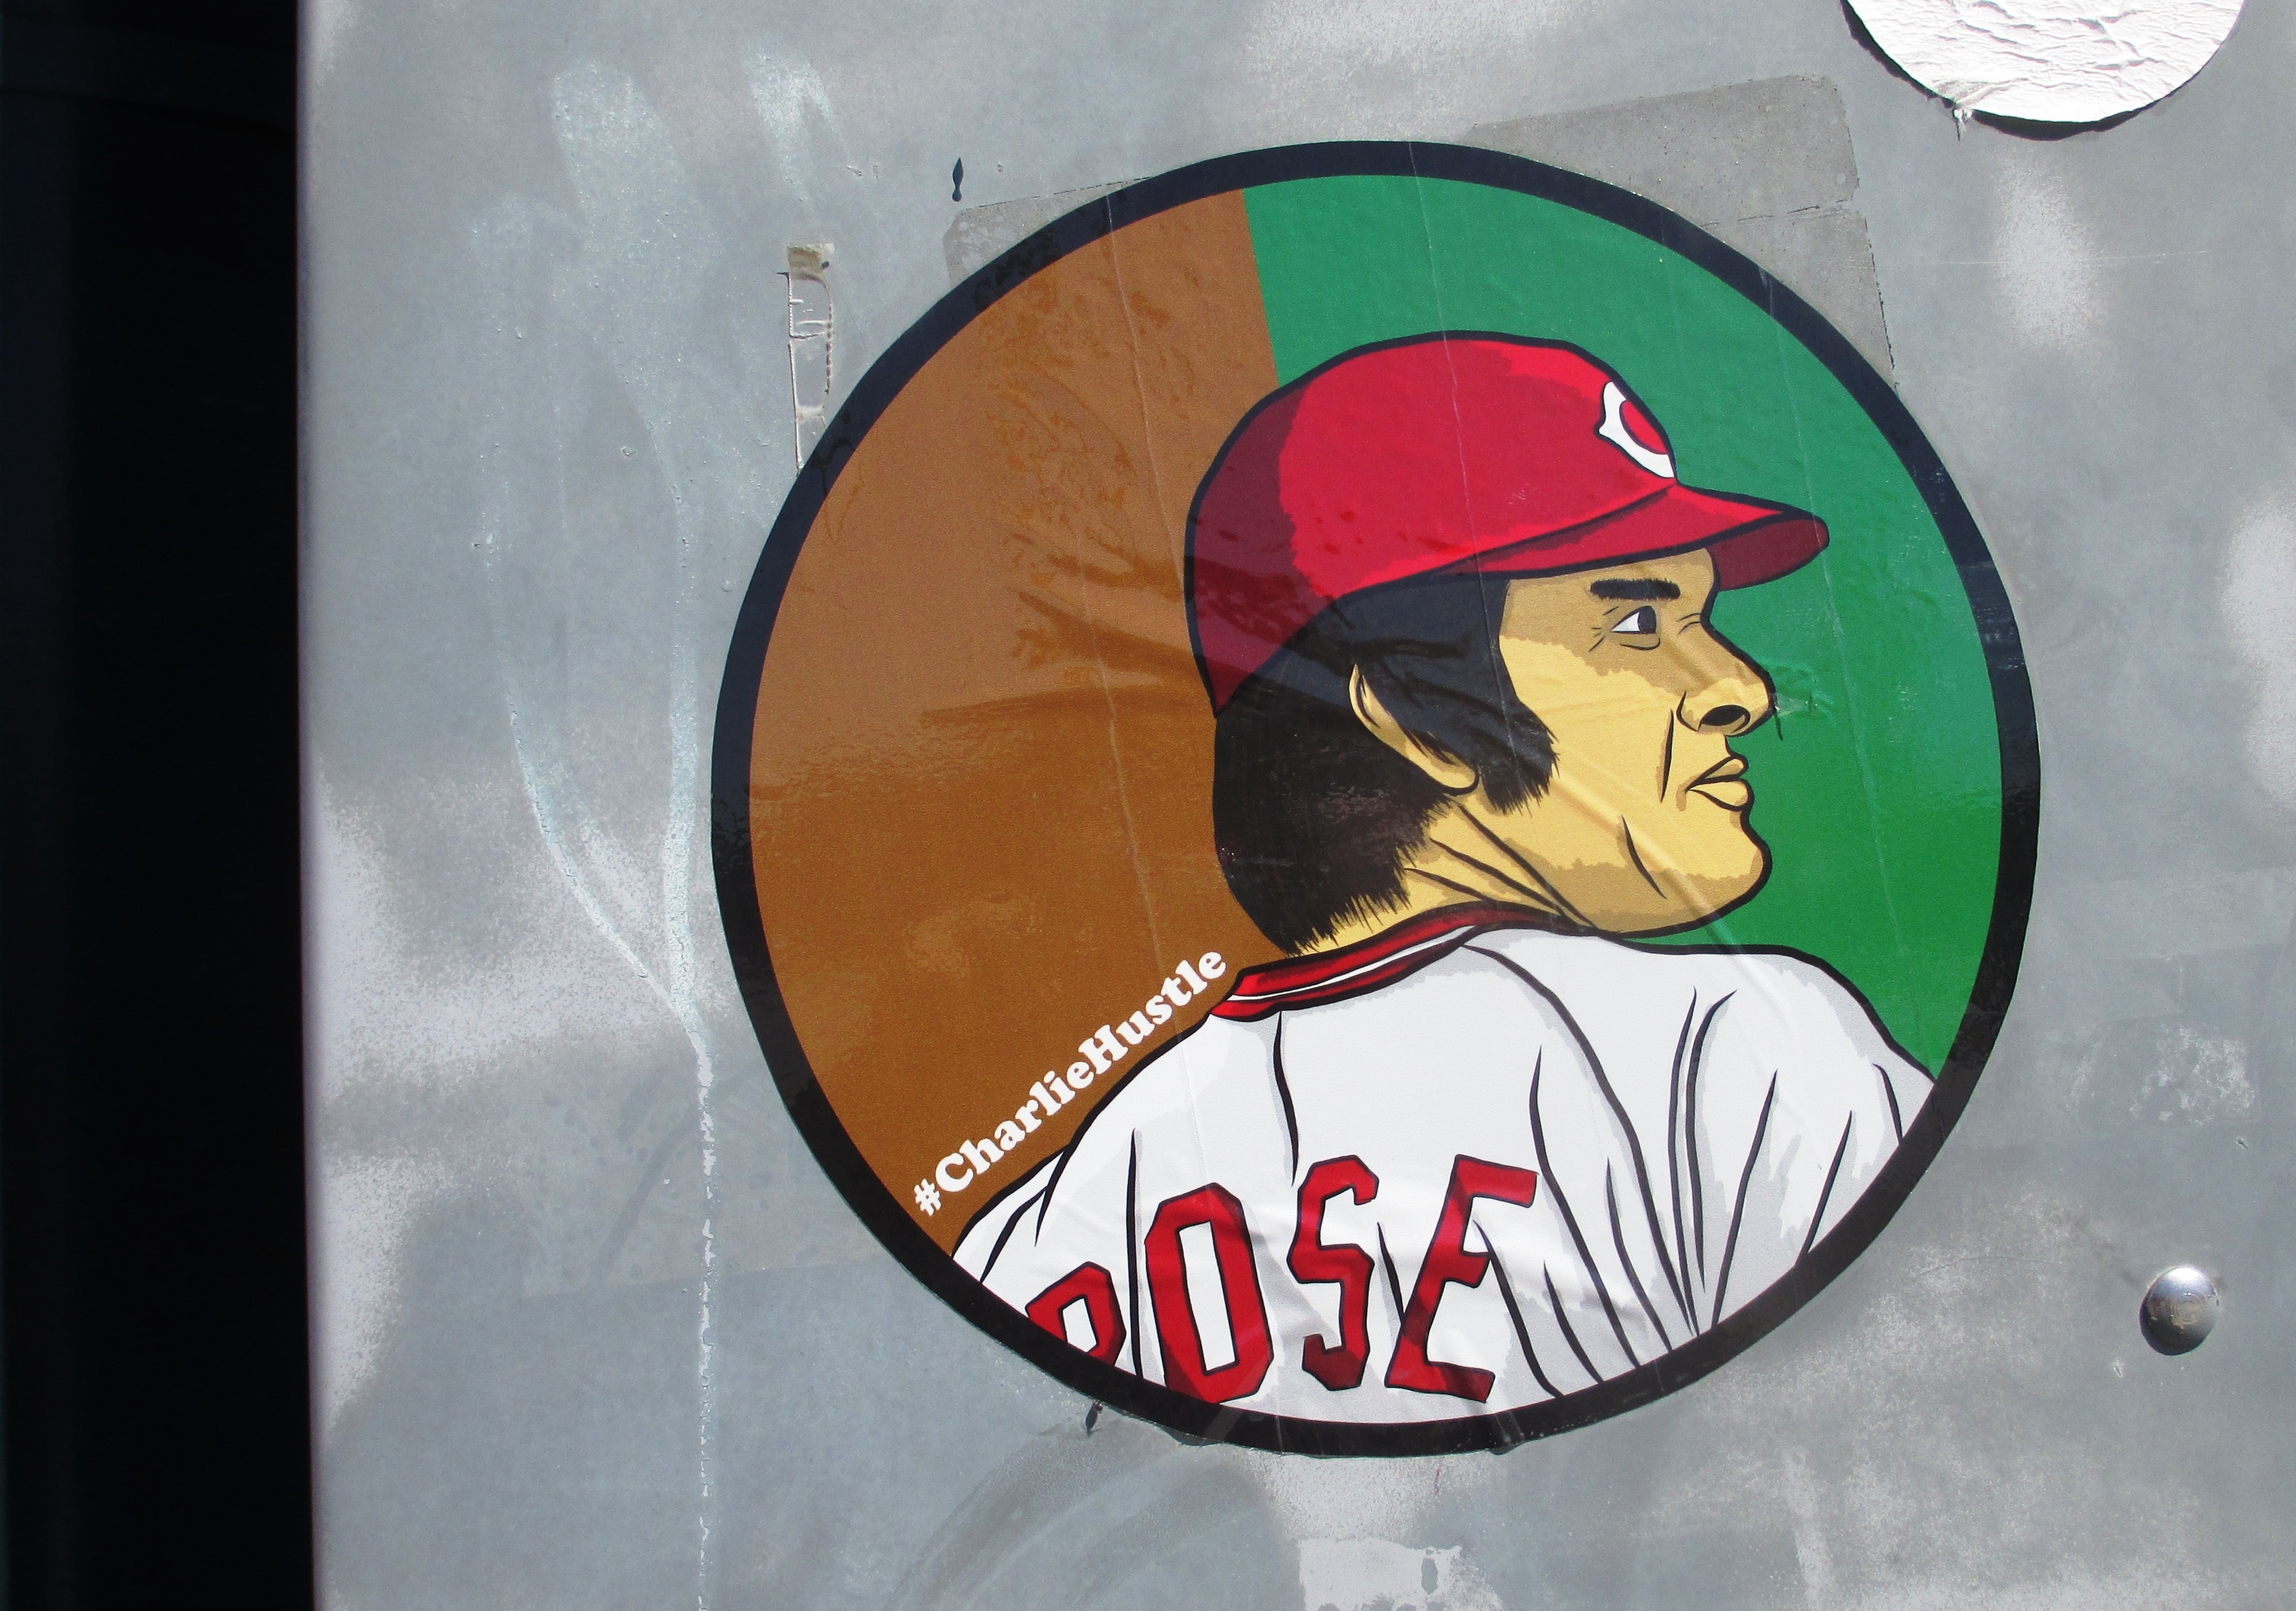 Pete Rose Sticker Spotted in Cincinnati, Ohio, April 2016